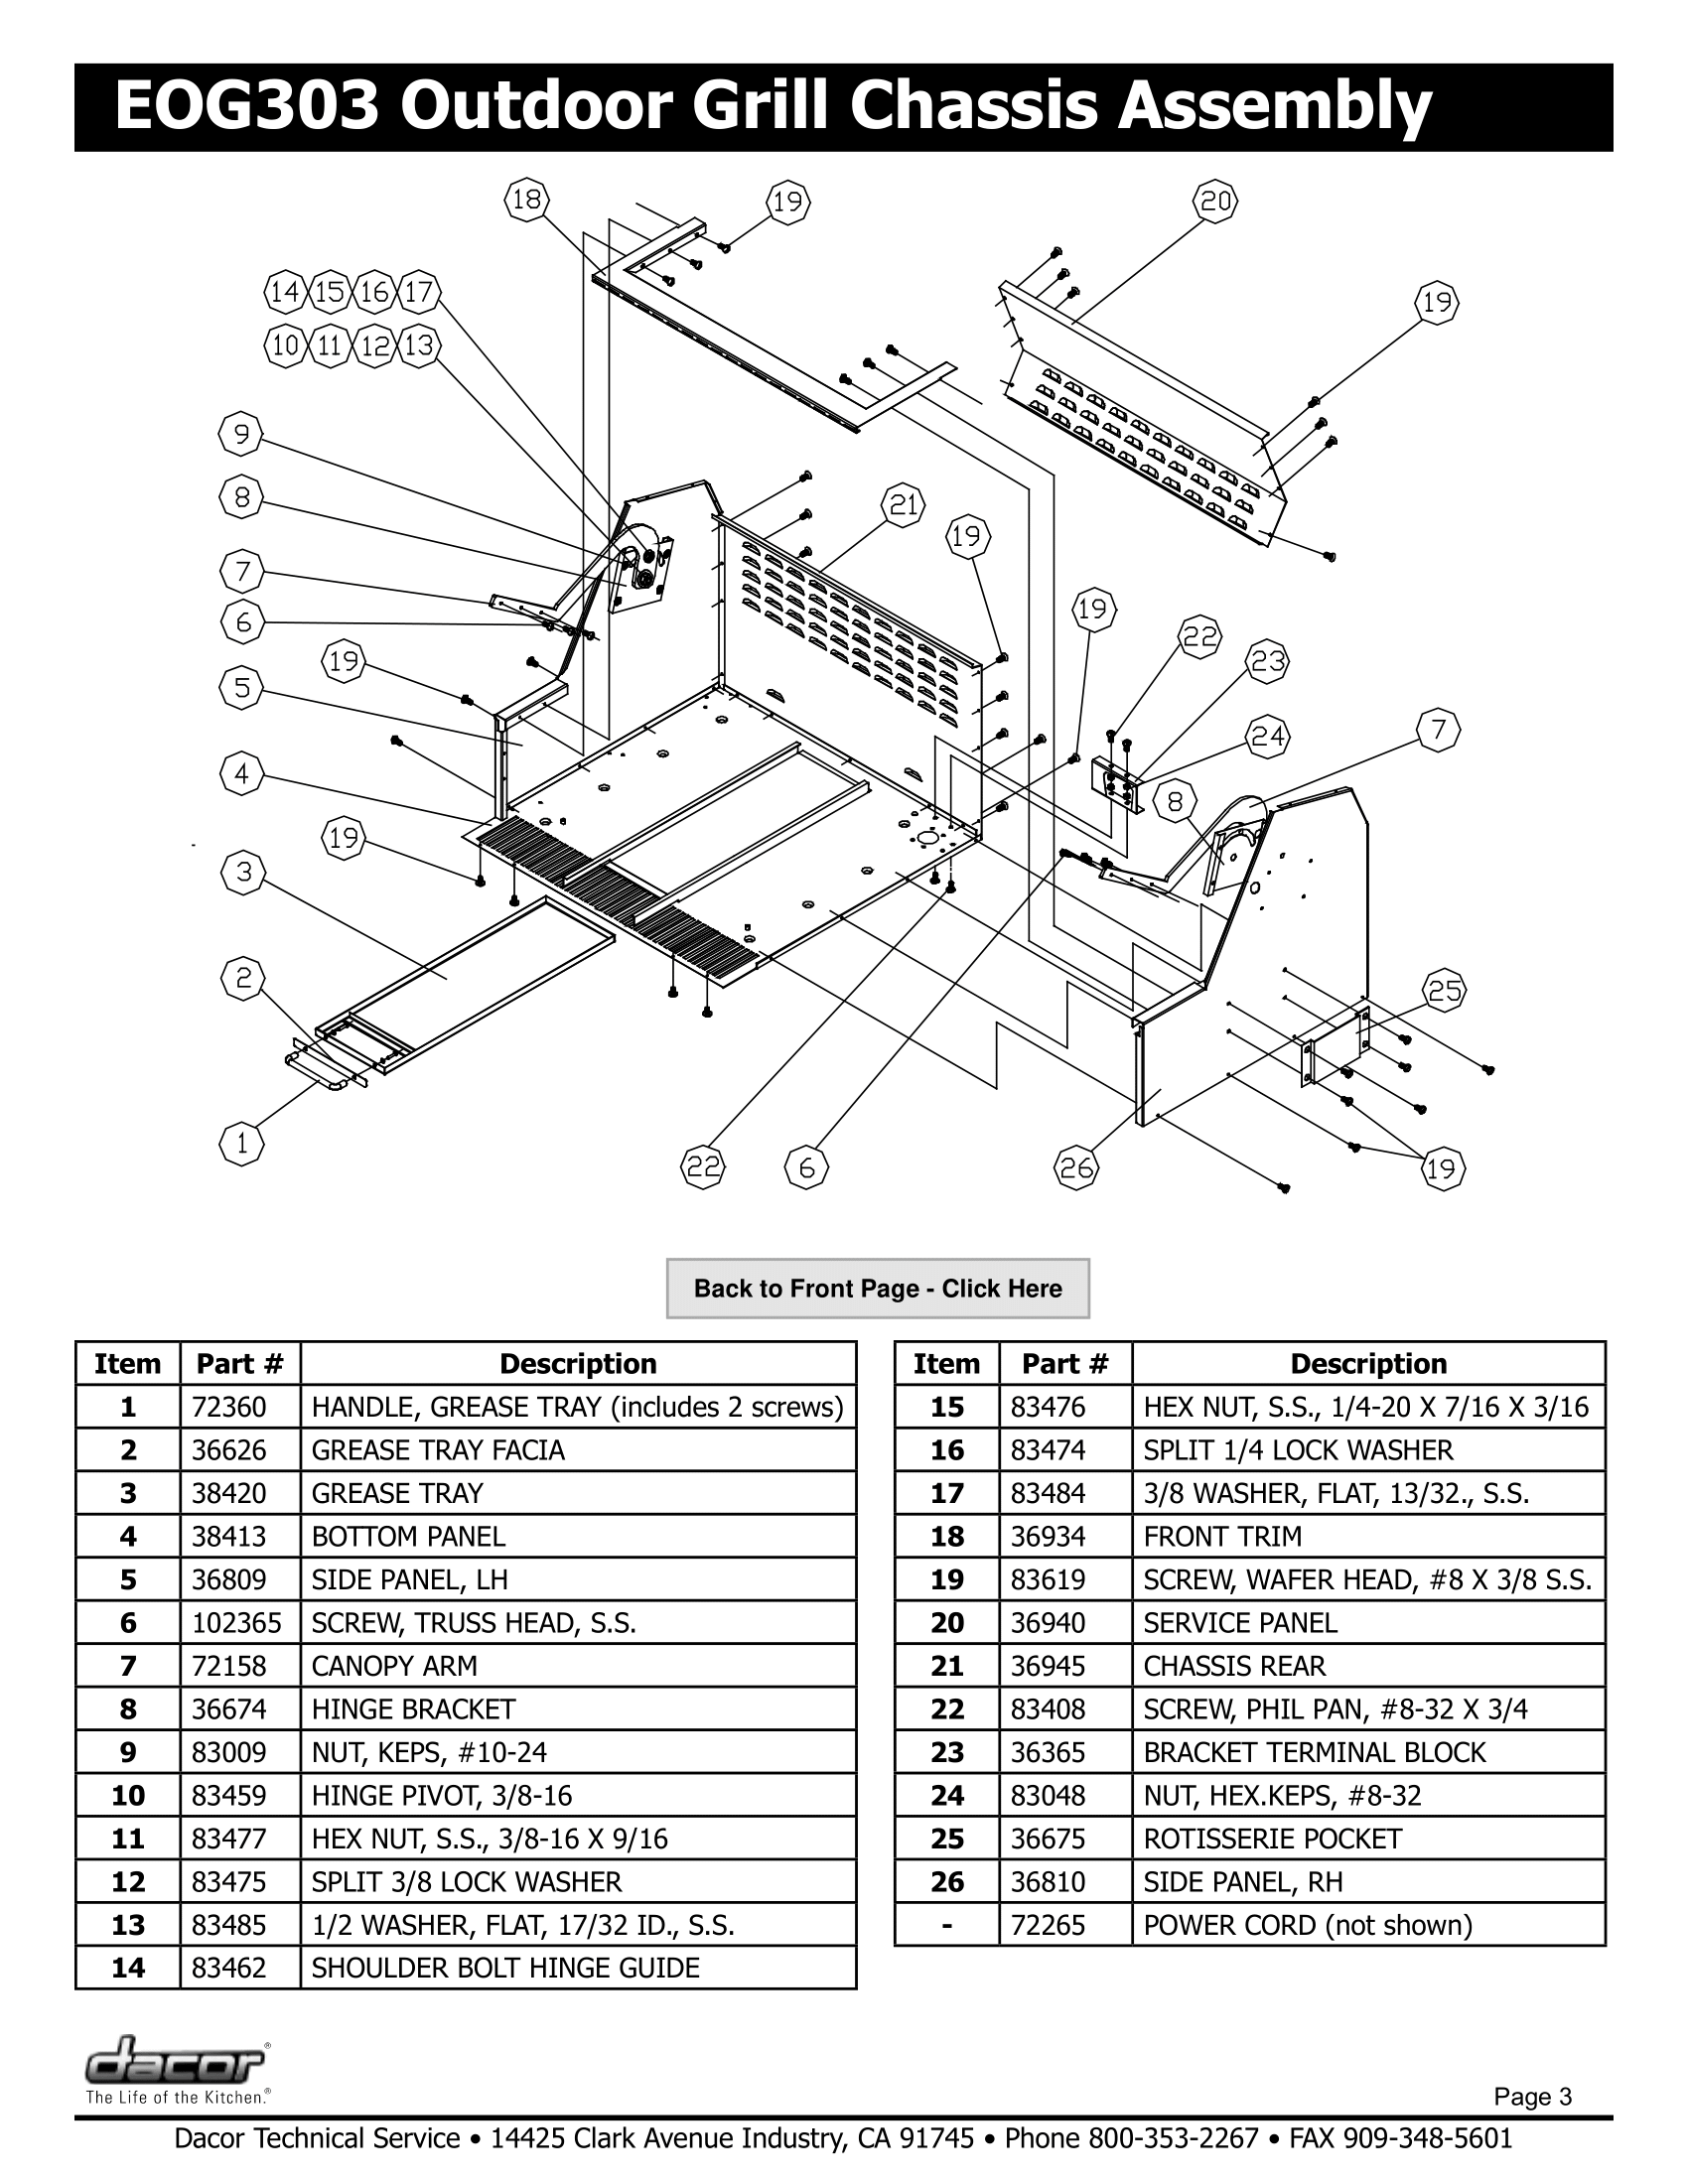 Dacor EOG303 Chassis Assembly Schematic